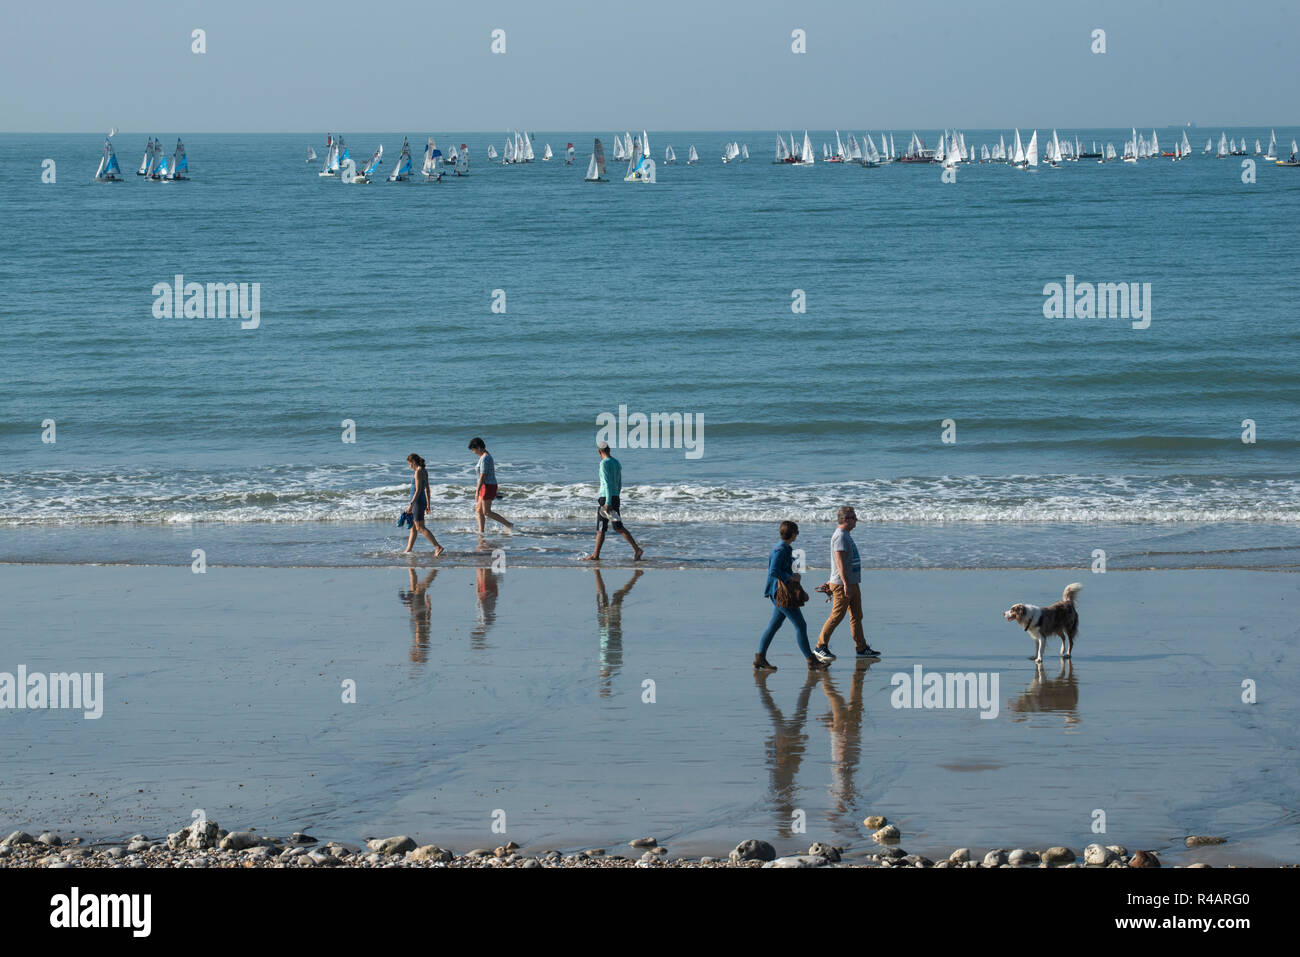 Le Havre (Normandy, north western France): walkers on the beach and sailboats in the background - Stock Image